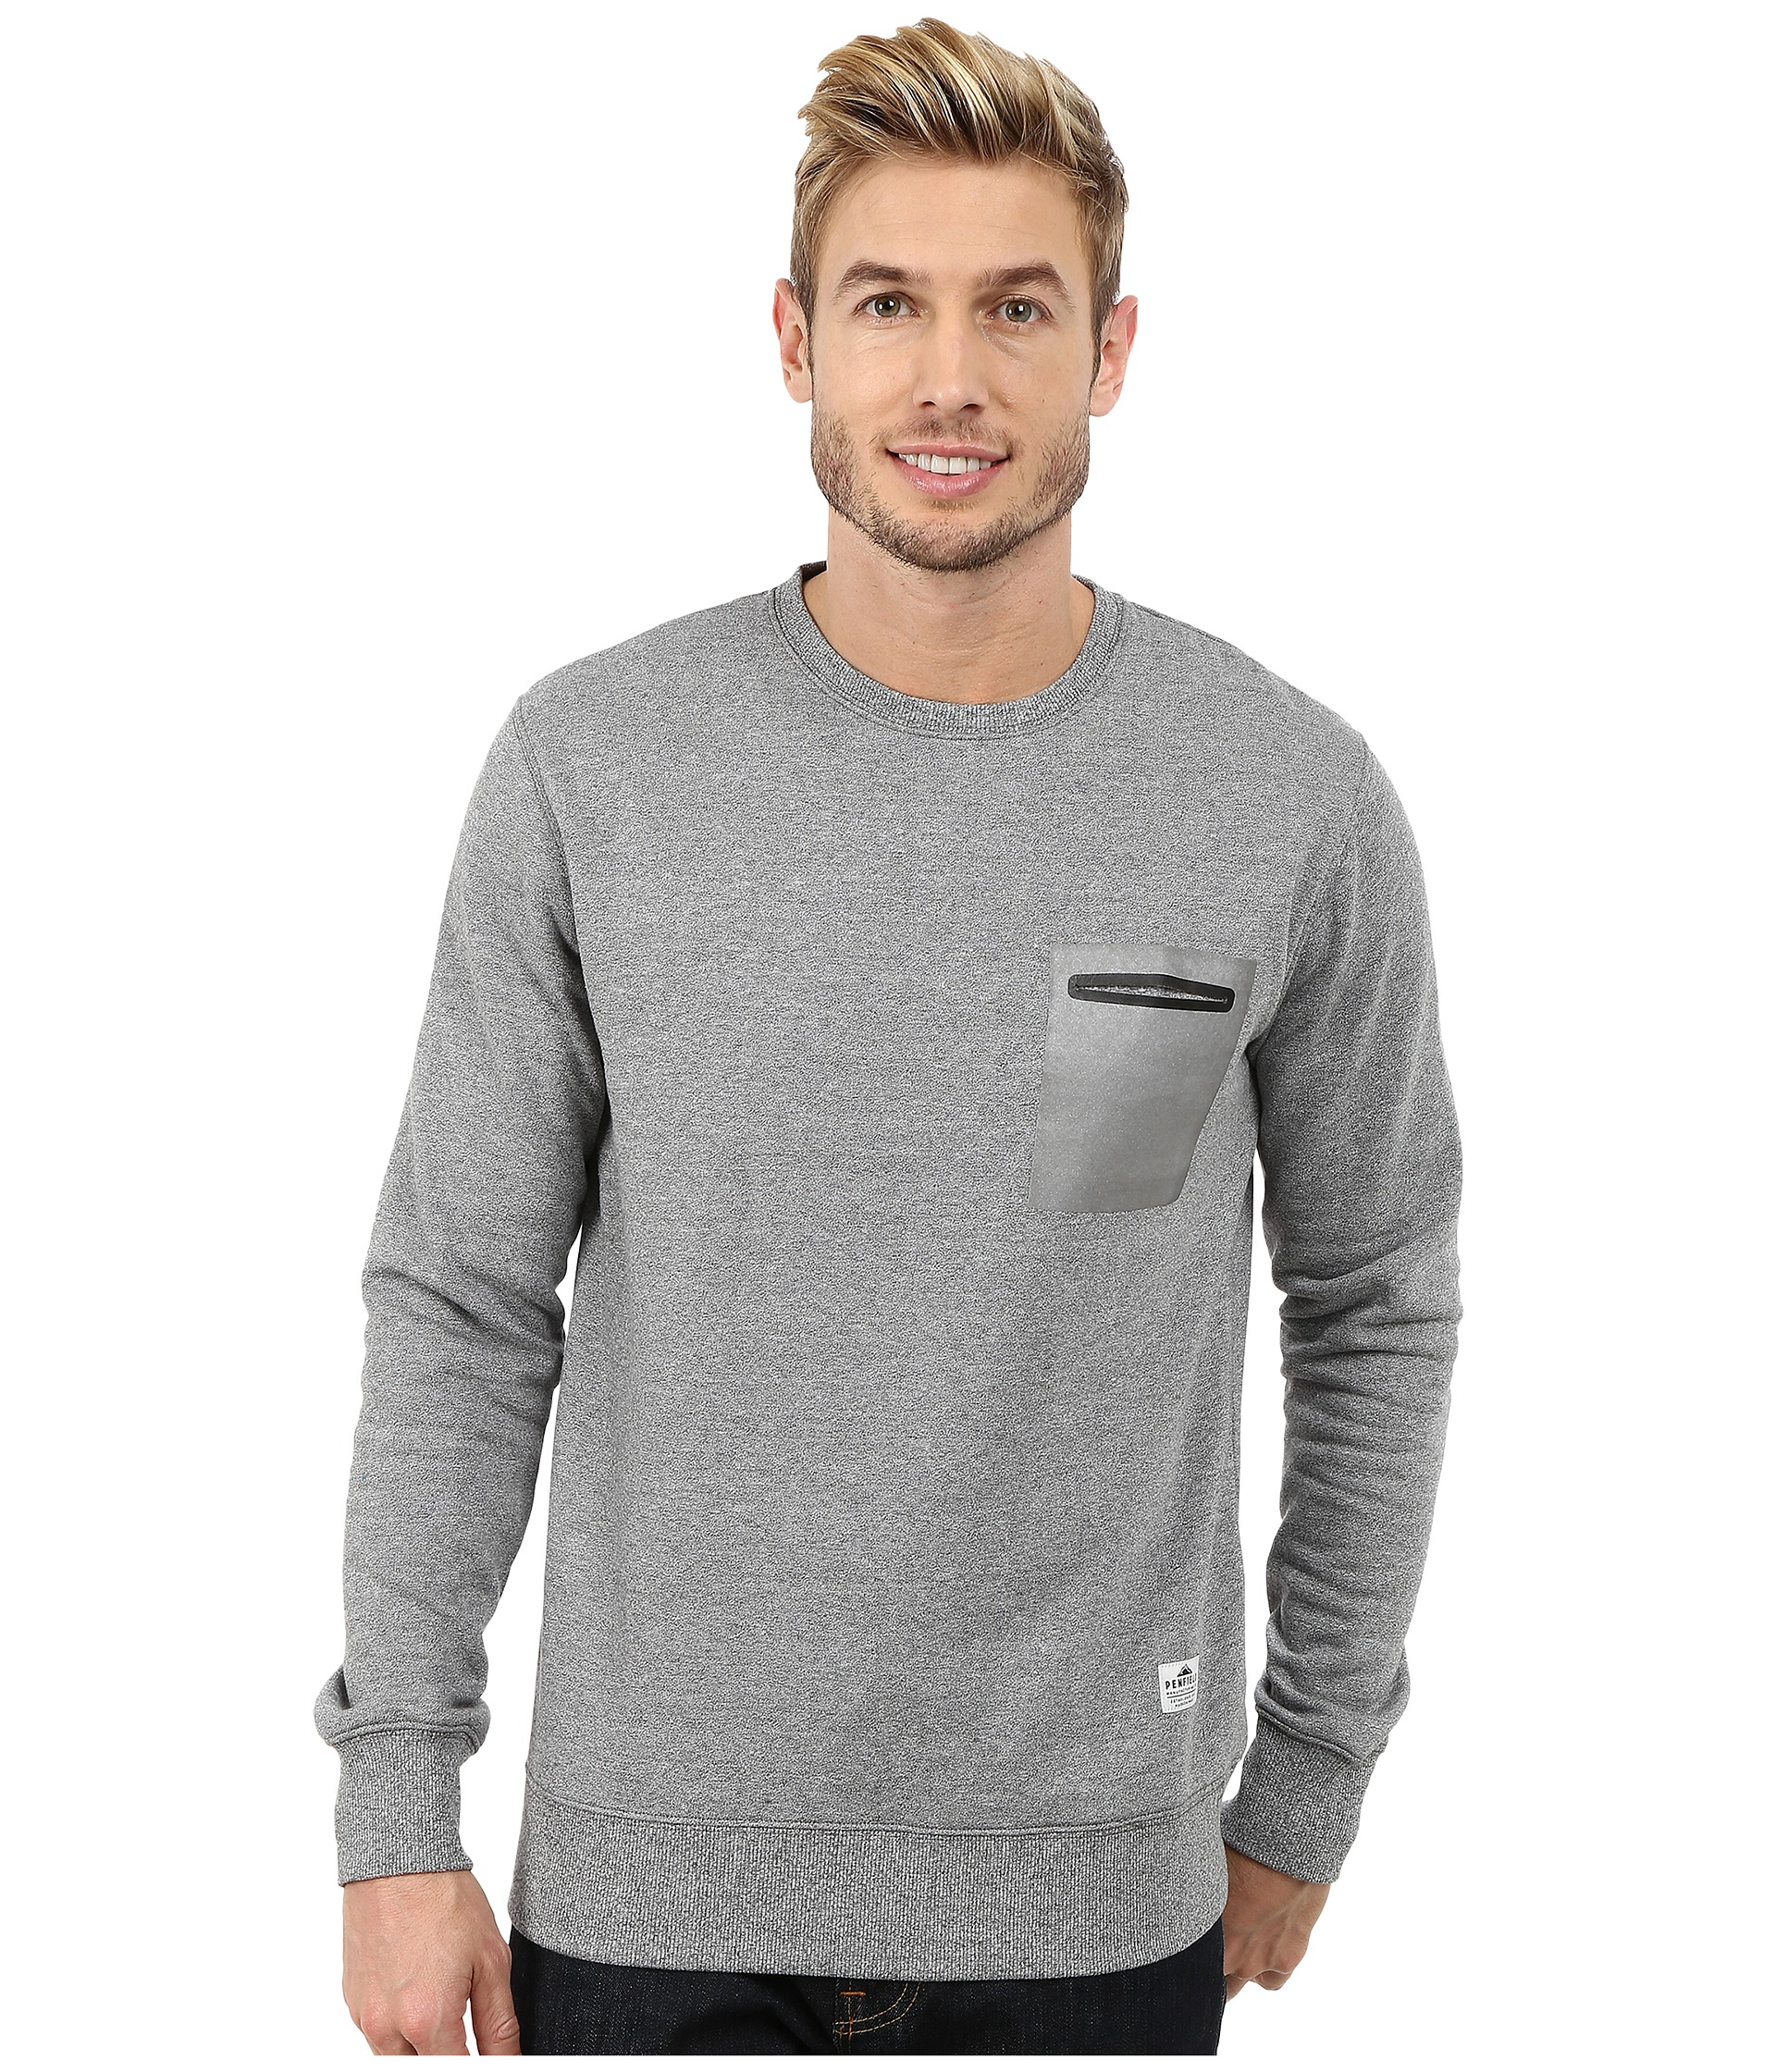 Penfield Kendrick Reflective Pocket Crew Neck Sweatshirt in Gray ...